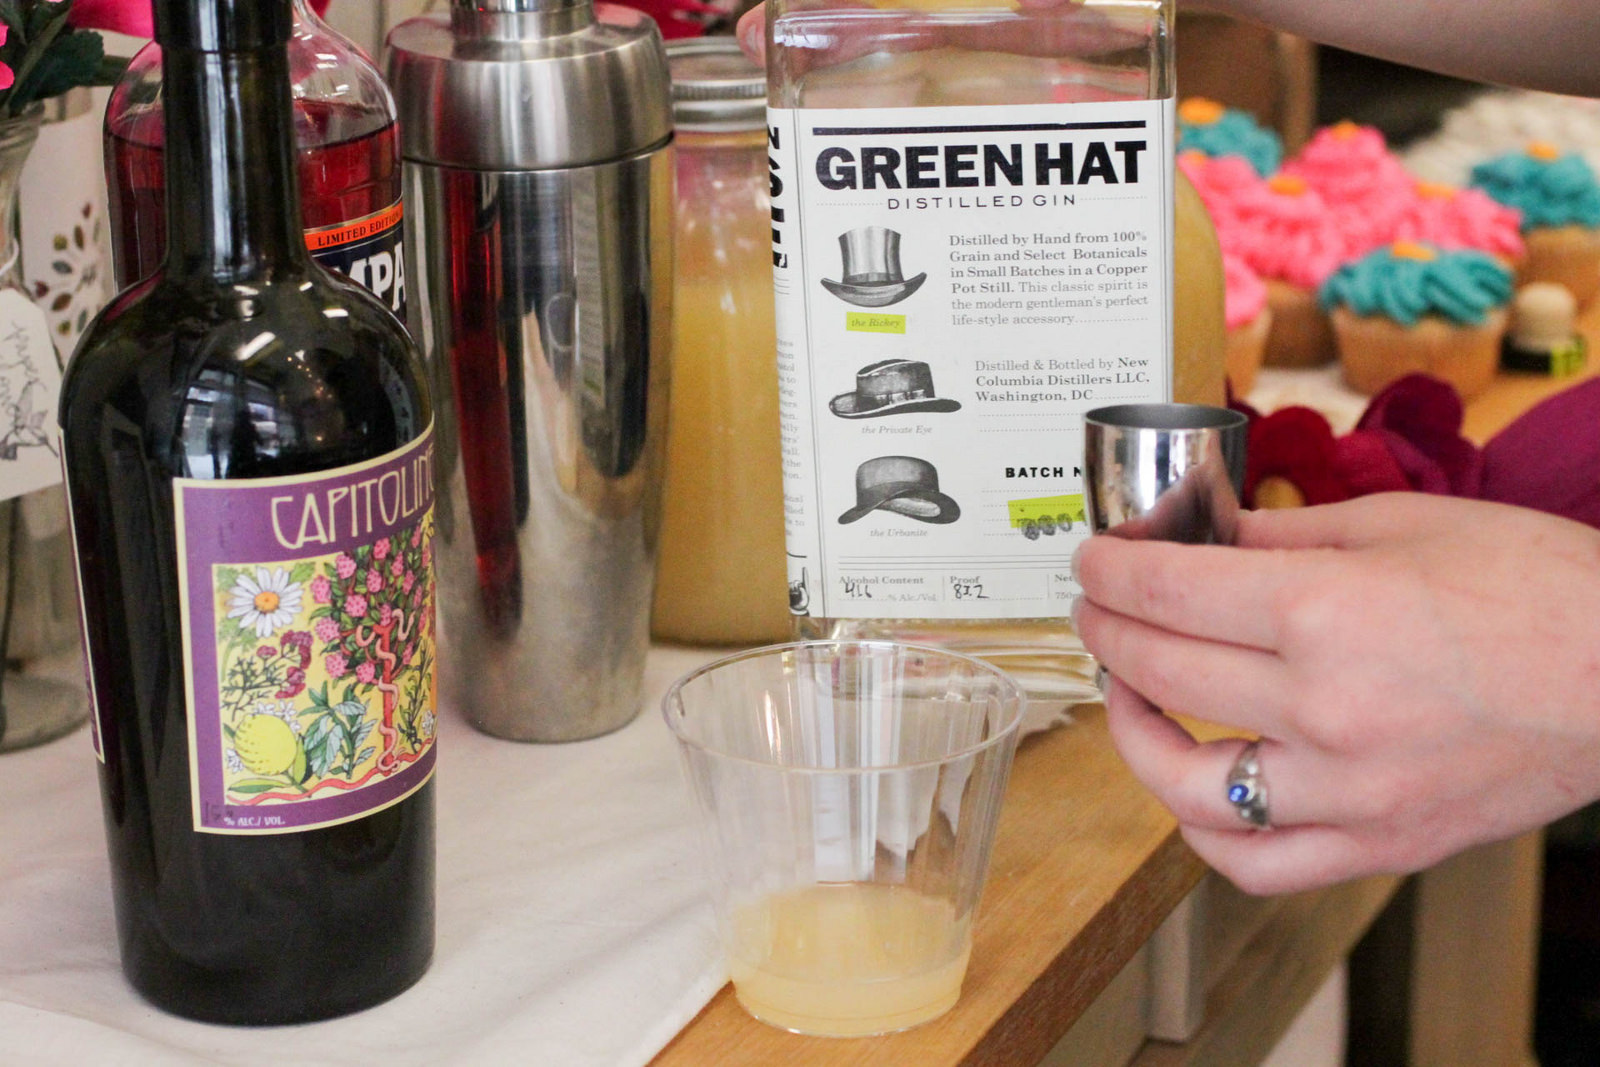 1.5 oz Green Hat gin (Made in DC!)